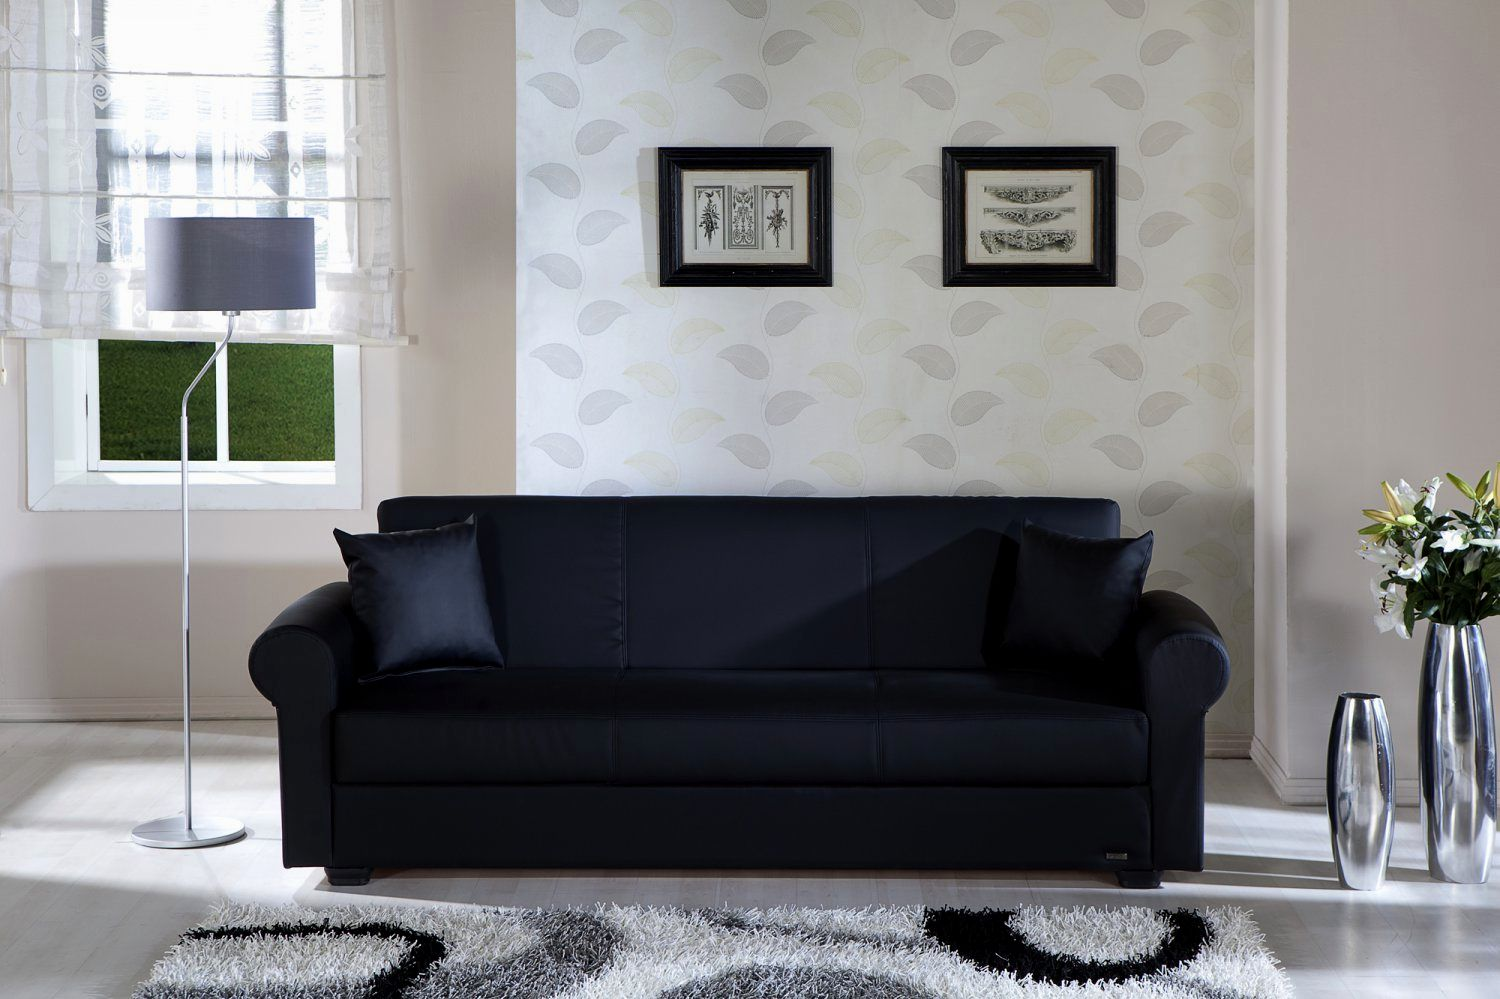 inspirational down sectional sofa architecture-Best Of Down Sectional sofa Décor